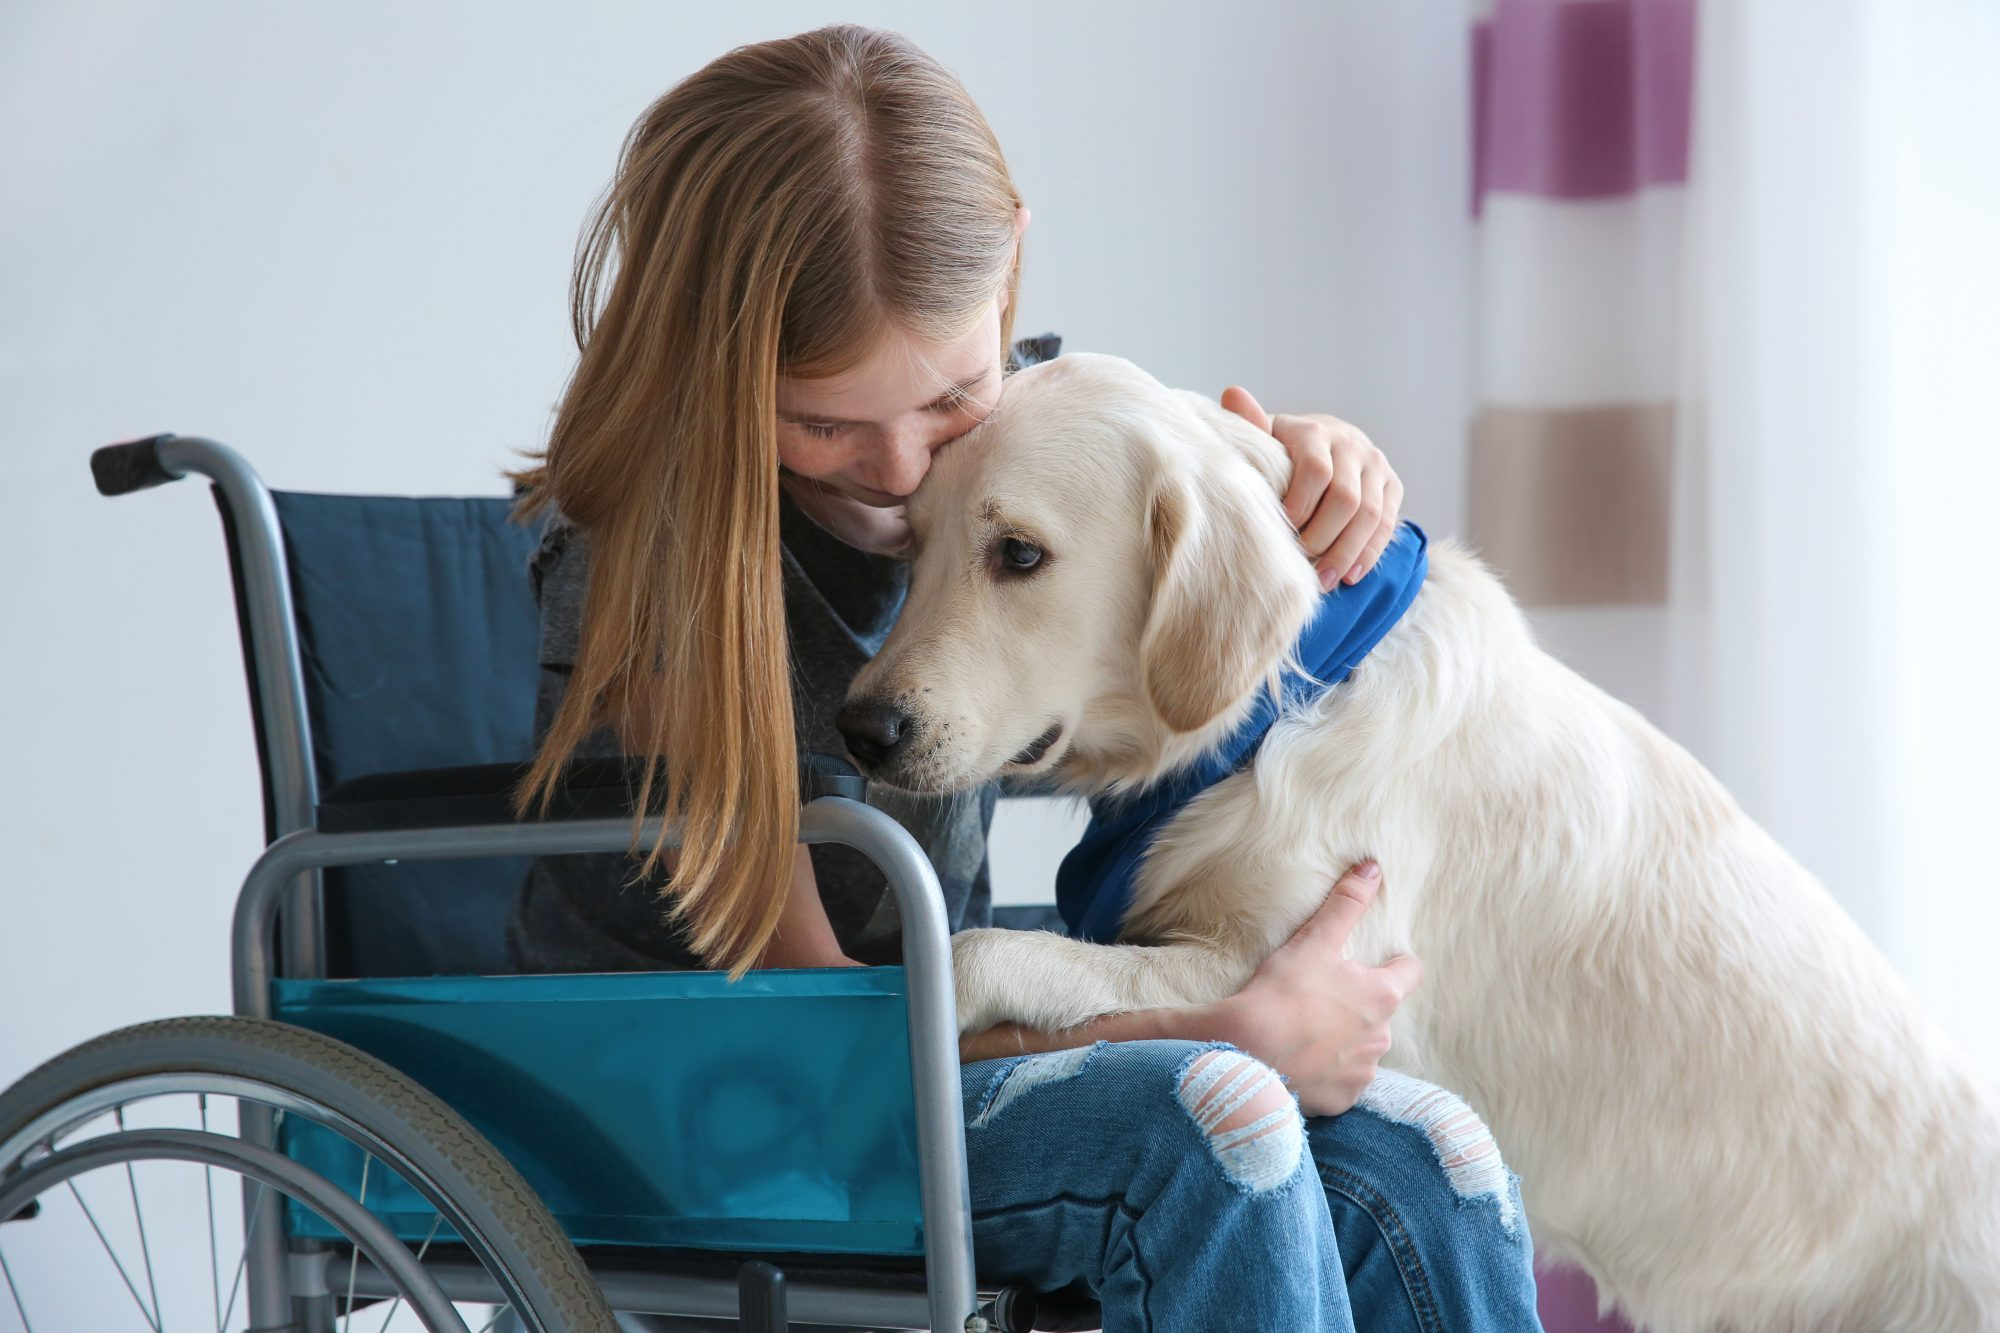 A yellow dog leans on a child in a wheelchair.